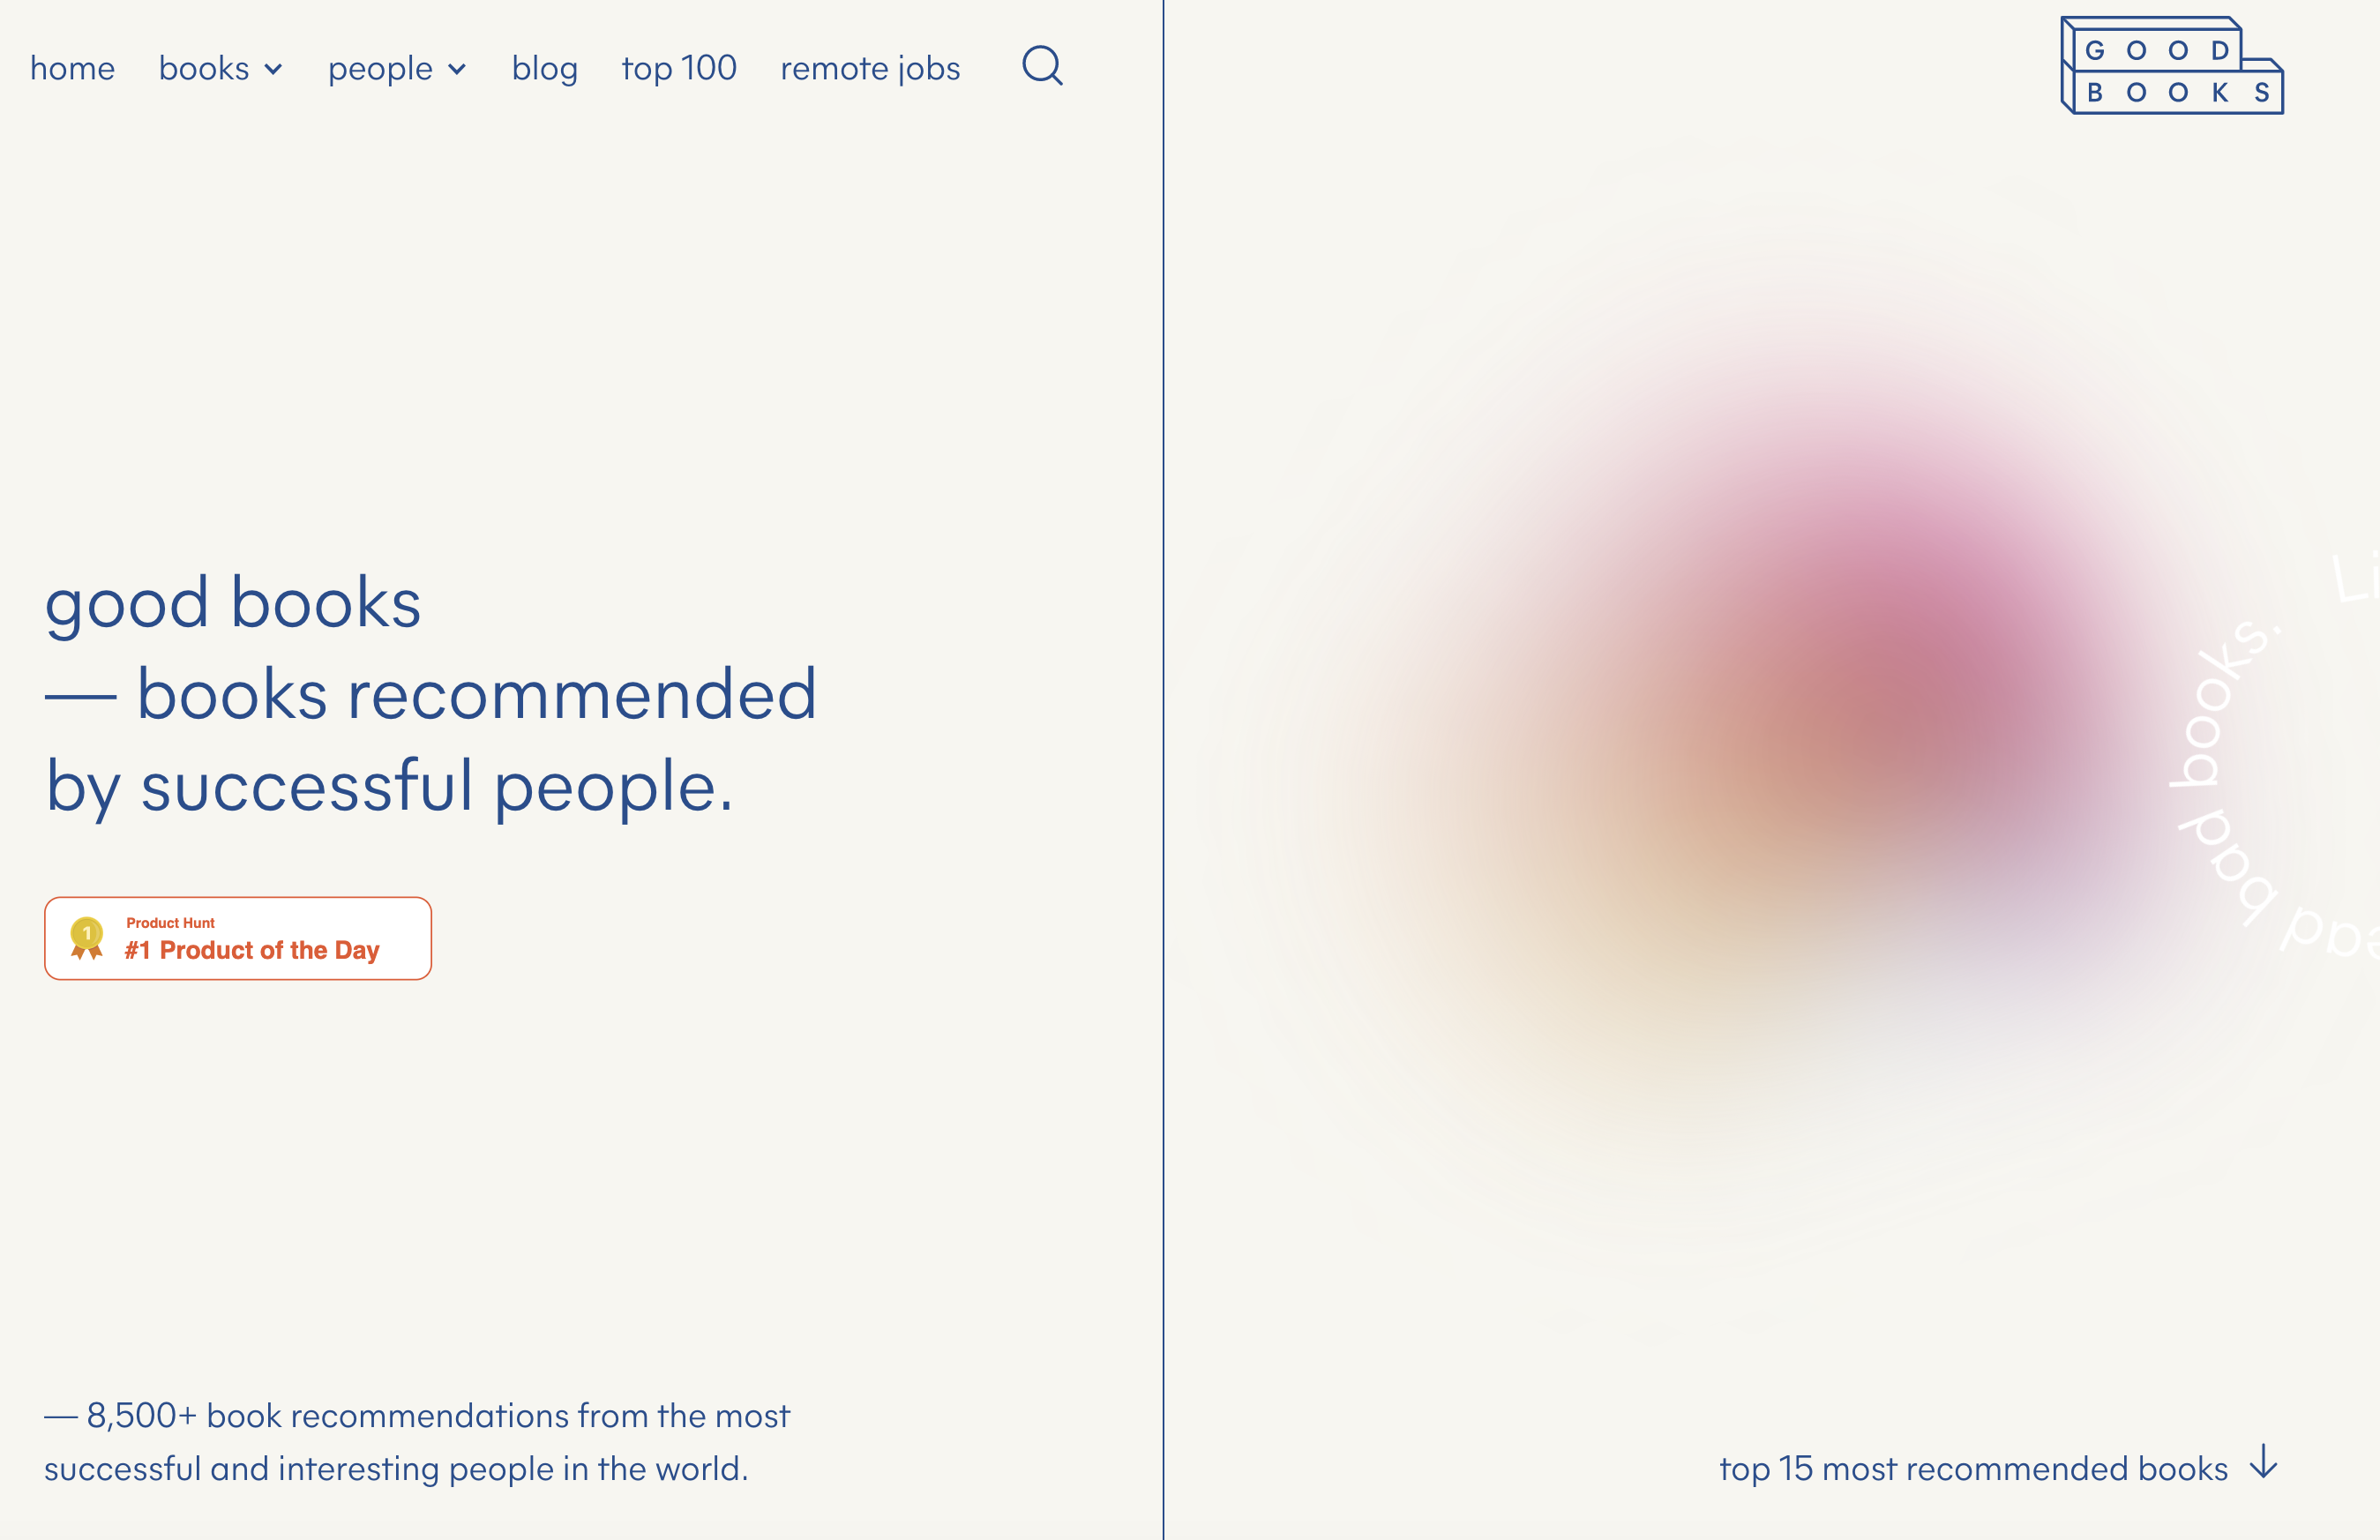 Goobooks.io's homepage hero uses a purple and yellow gaussian blur as a visual focal point.